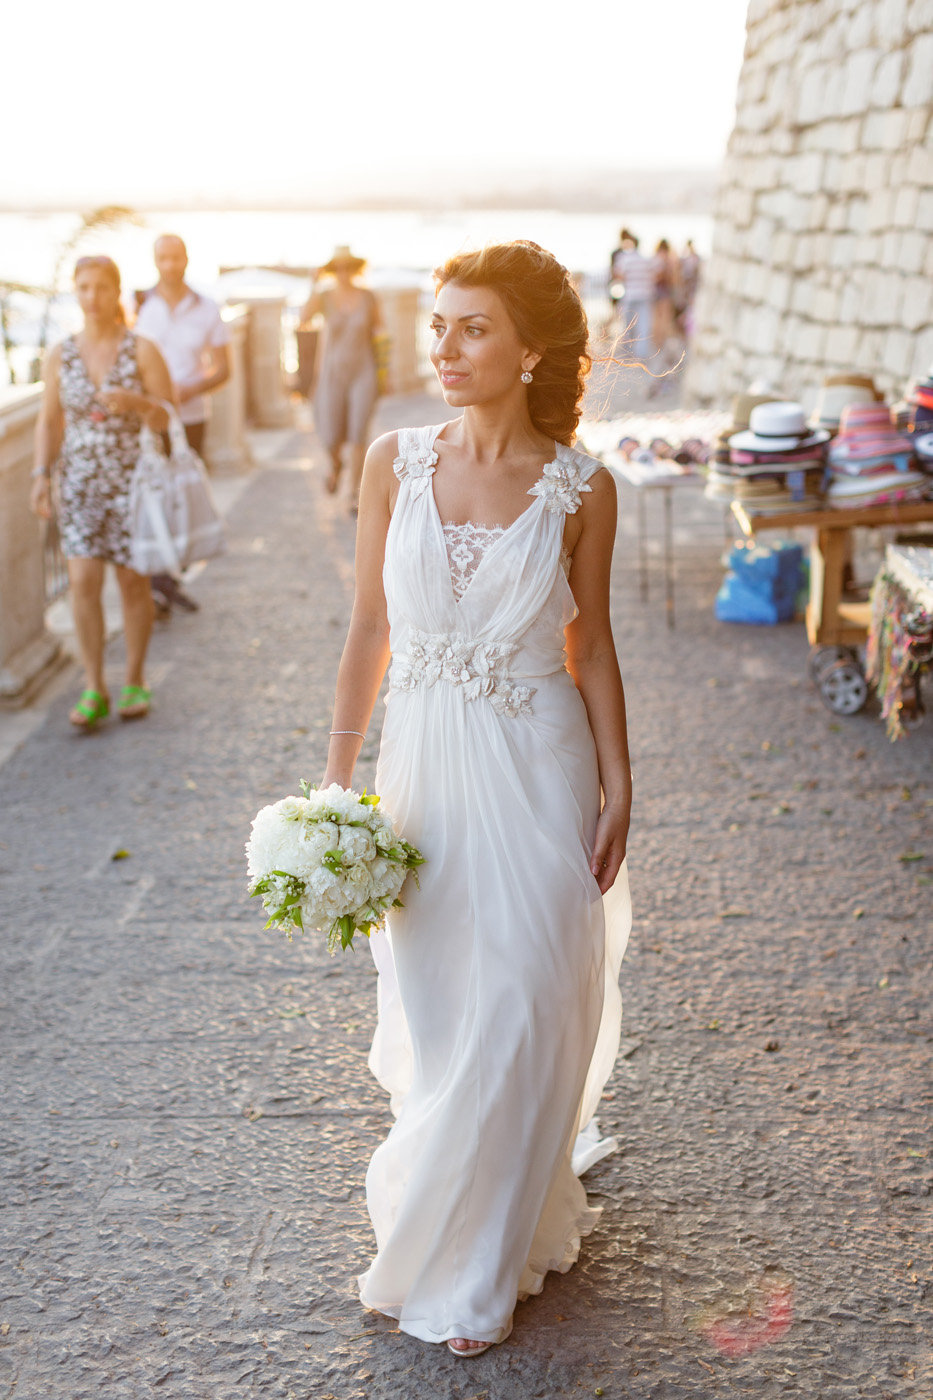 Francesca + Antonio - Sicily, Italy Wedding